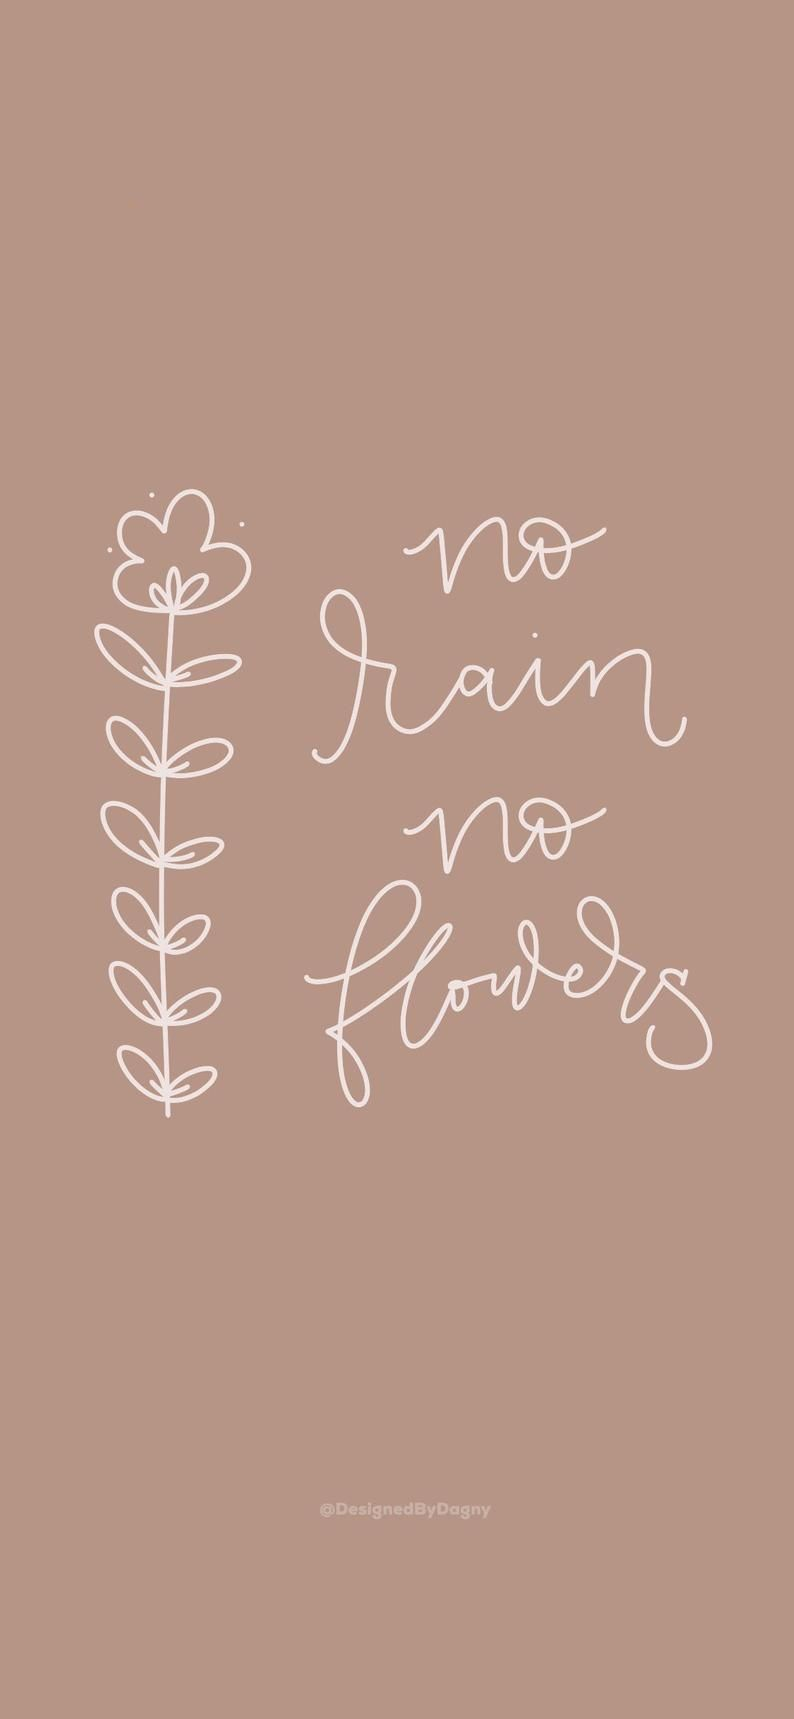 Iphone Wallpaper Cell Phone Wallpaper Phone Background Mobile Phone Wallpaper Personalized Phone Wallpaper Iphone Background In 2020 Phone Wallpaper Quotes No Rain No Flowers Inspirational Phone Wallpaper